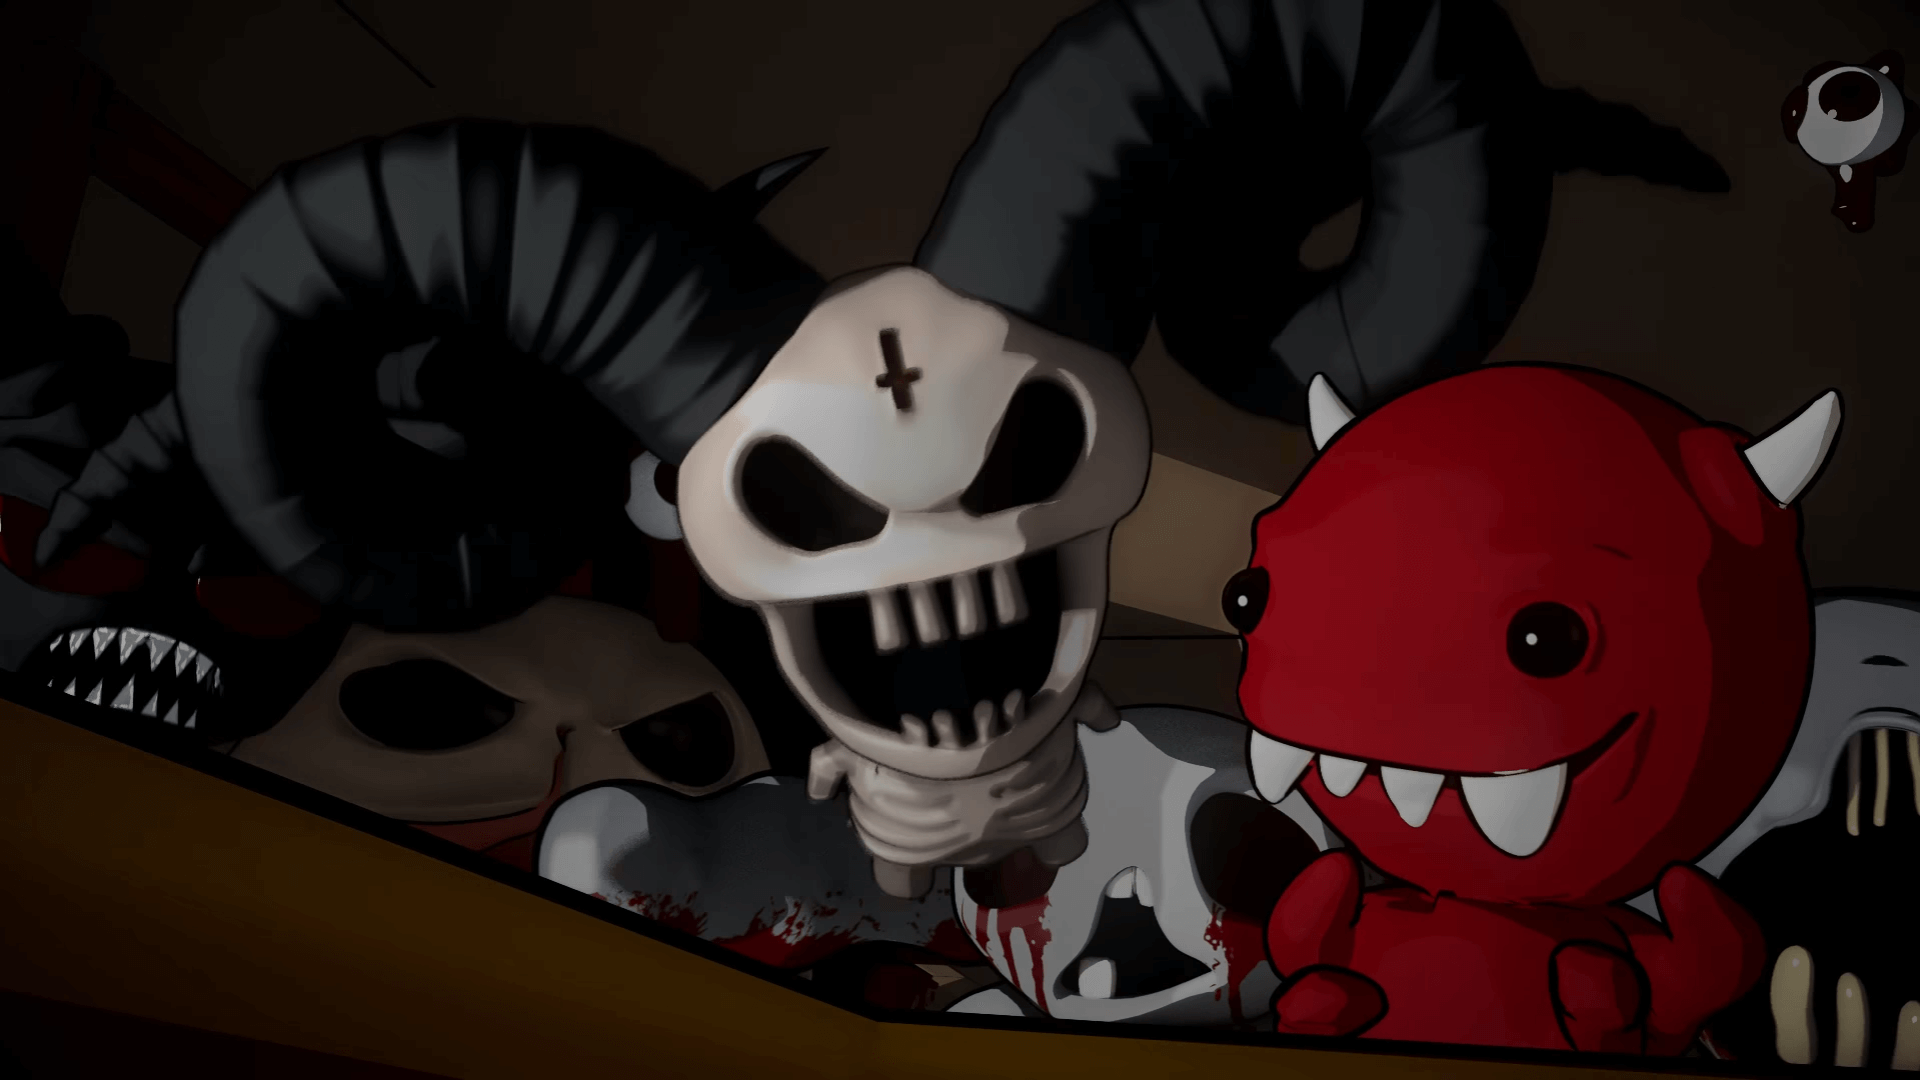 Binding of Isaac: Afterbirth+ Trailer, Release Date Announced